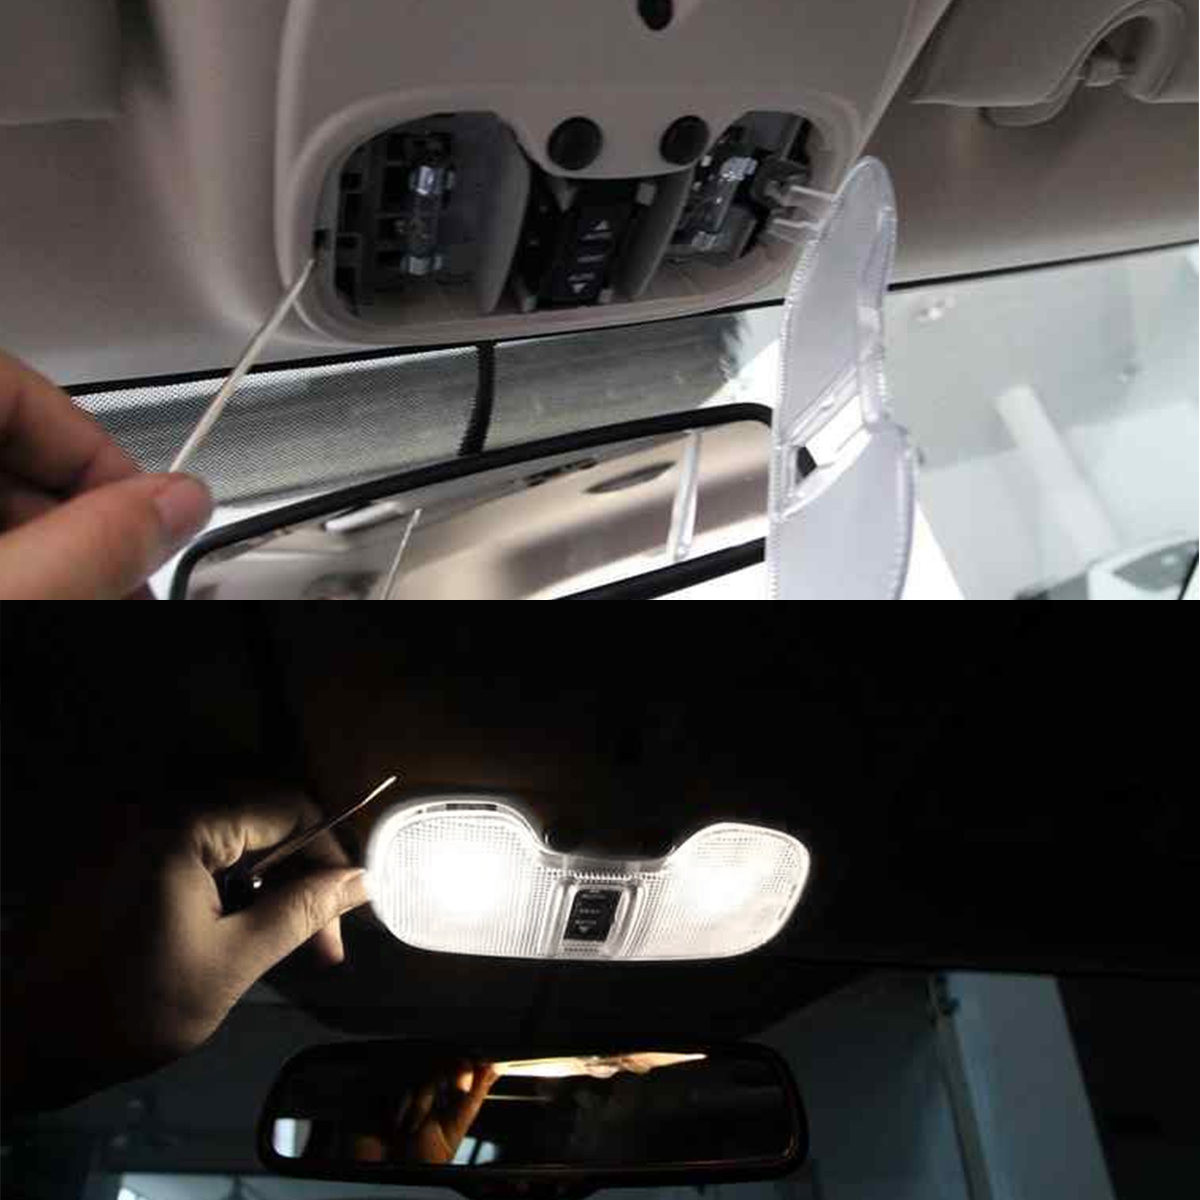 LED Festoon Dome 31 36 39 41mm Automotive LED Interior light Double pointed COB ceramic White C5W led Auto Light for Car Styling in Signal Lamp from Automobiles Motorcycles